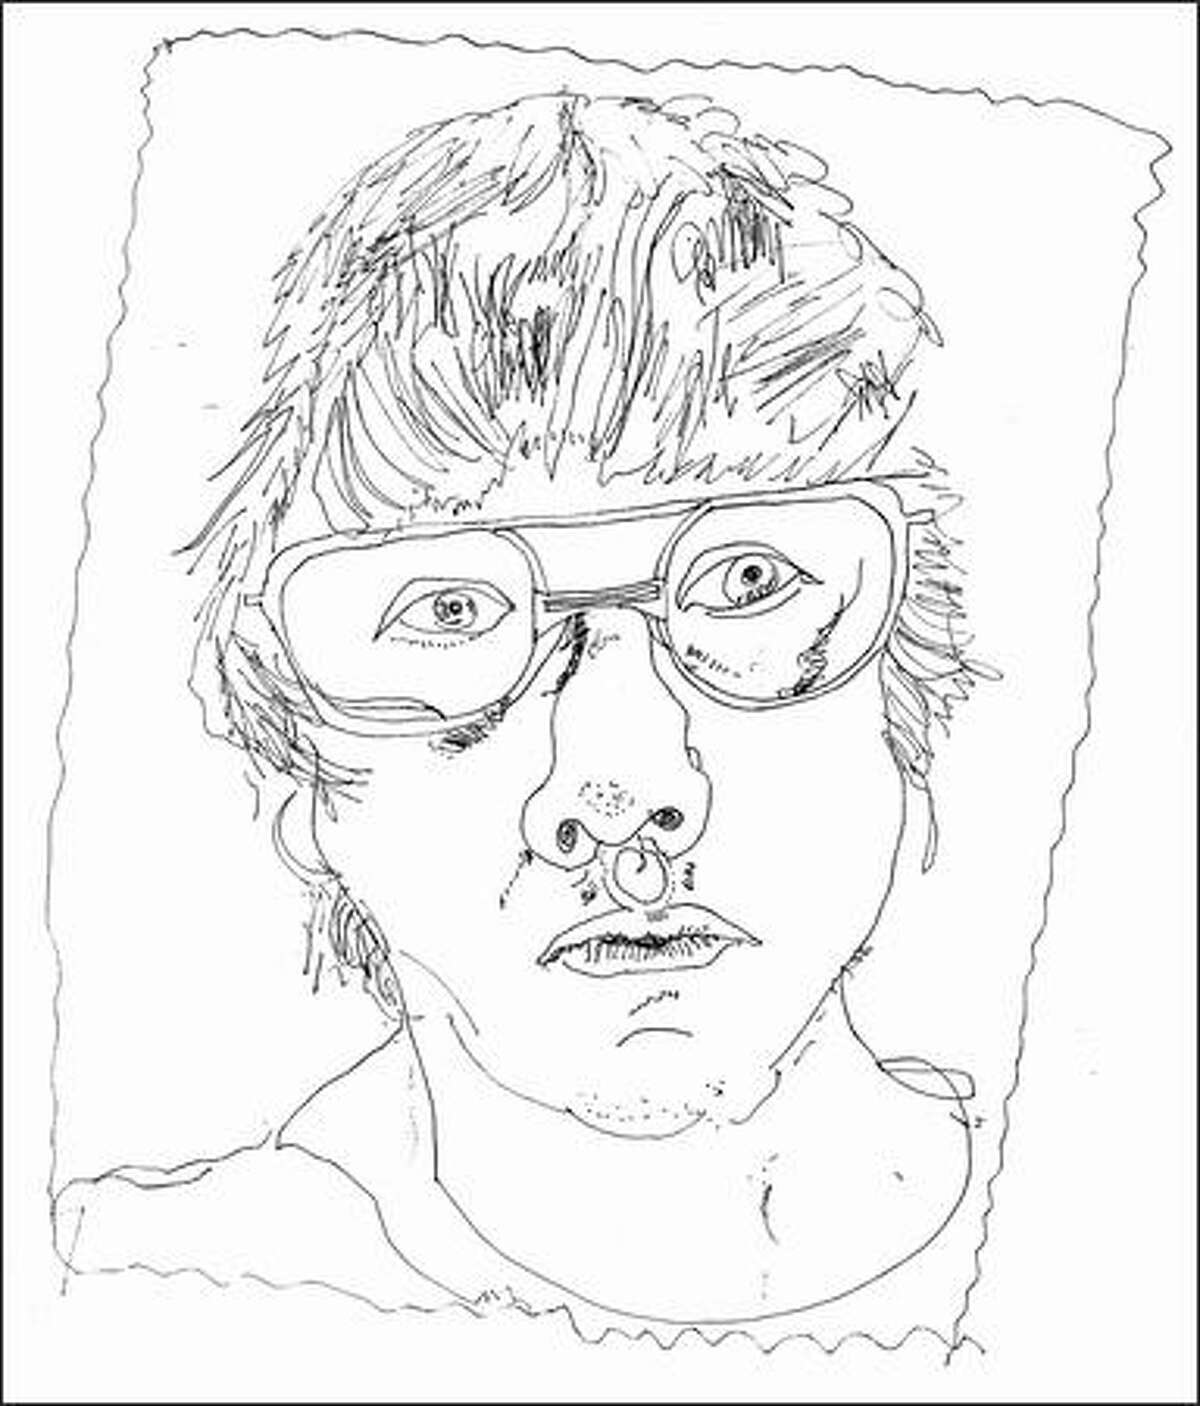 A self-portrait by writer and